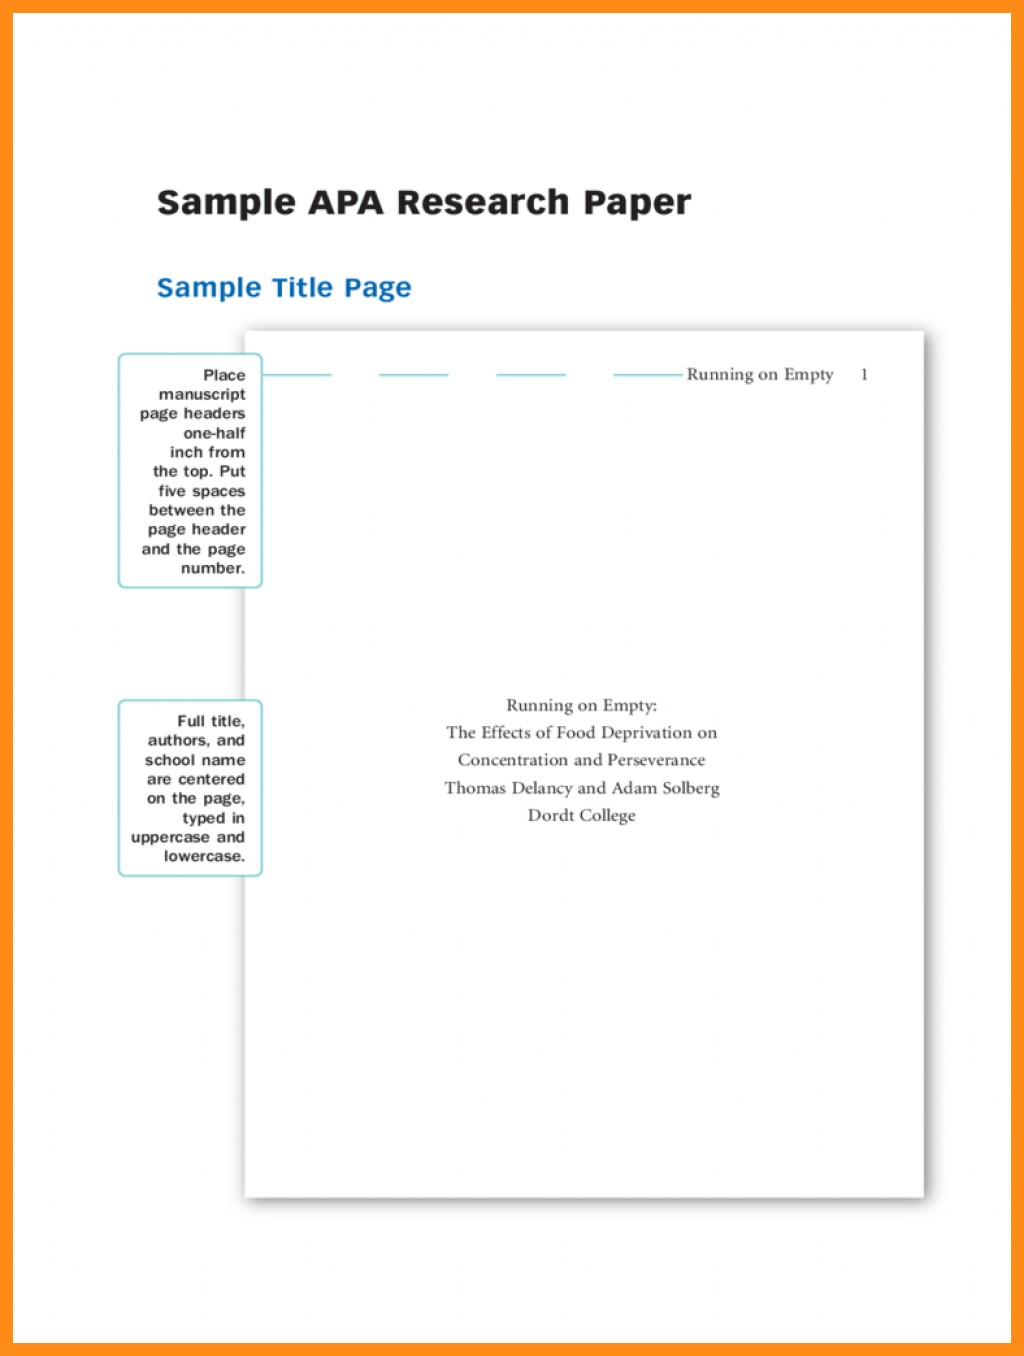 006 Research Paperver Page Apa Samples Of Papers Format Title Sample Dolap Magnetband Excellent Paper Cover Reference Large